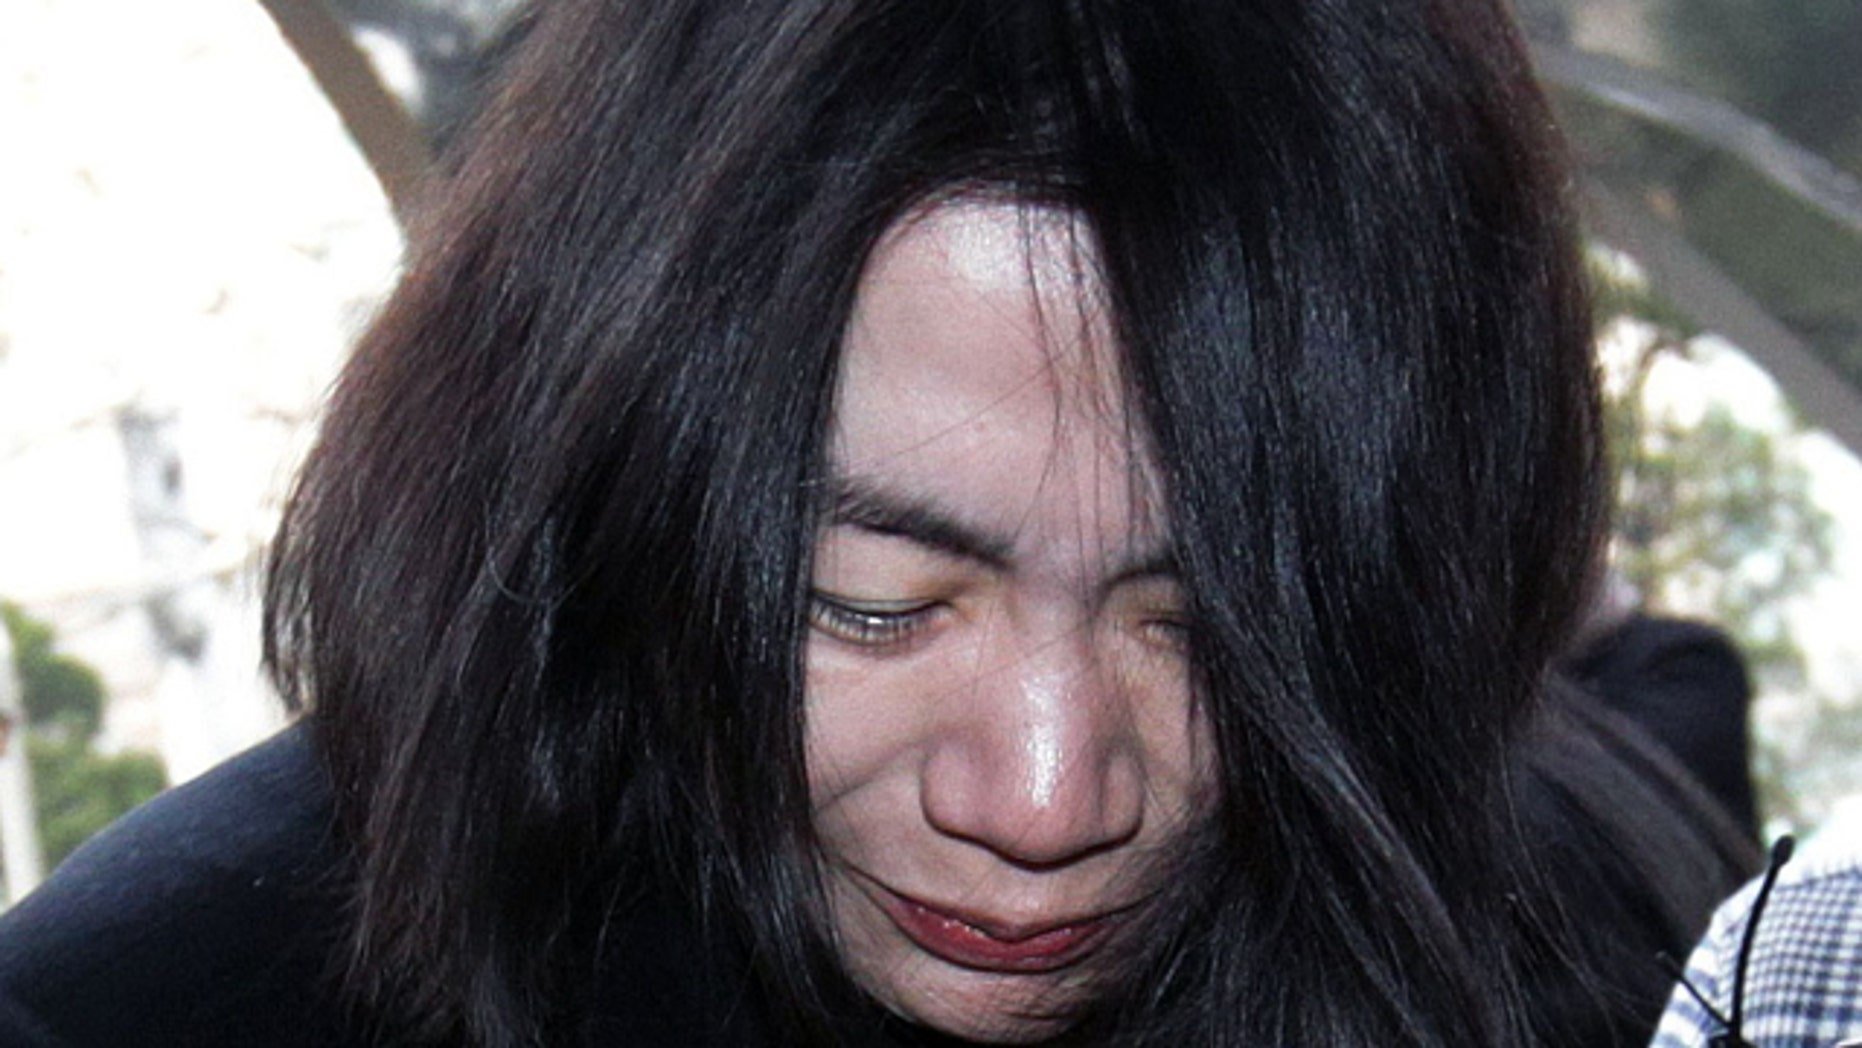 Dec. 30, 2014: Cho Hyun-ah, former vice president of Korean Air Lines, arrives at the Seoul Western District Prosecutors Office. A court found Cho guilty of violating aviation safety law after a trial that stemmed from her tantrum over how she was served macadamia nuts on a flight. (AP Photo/Ahn Young-joon, File)